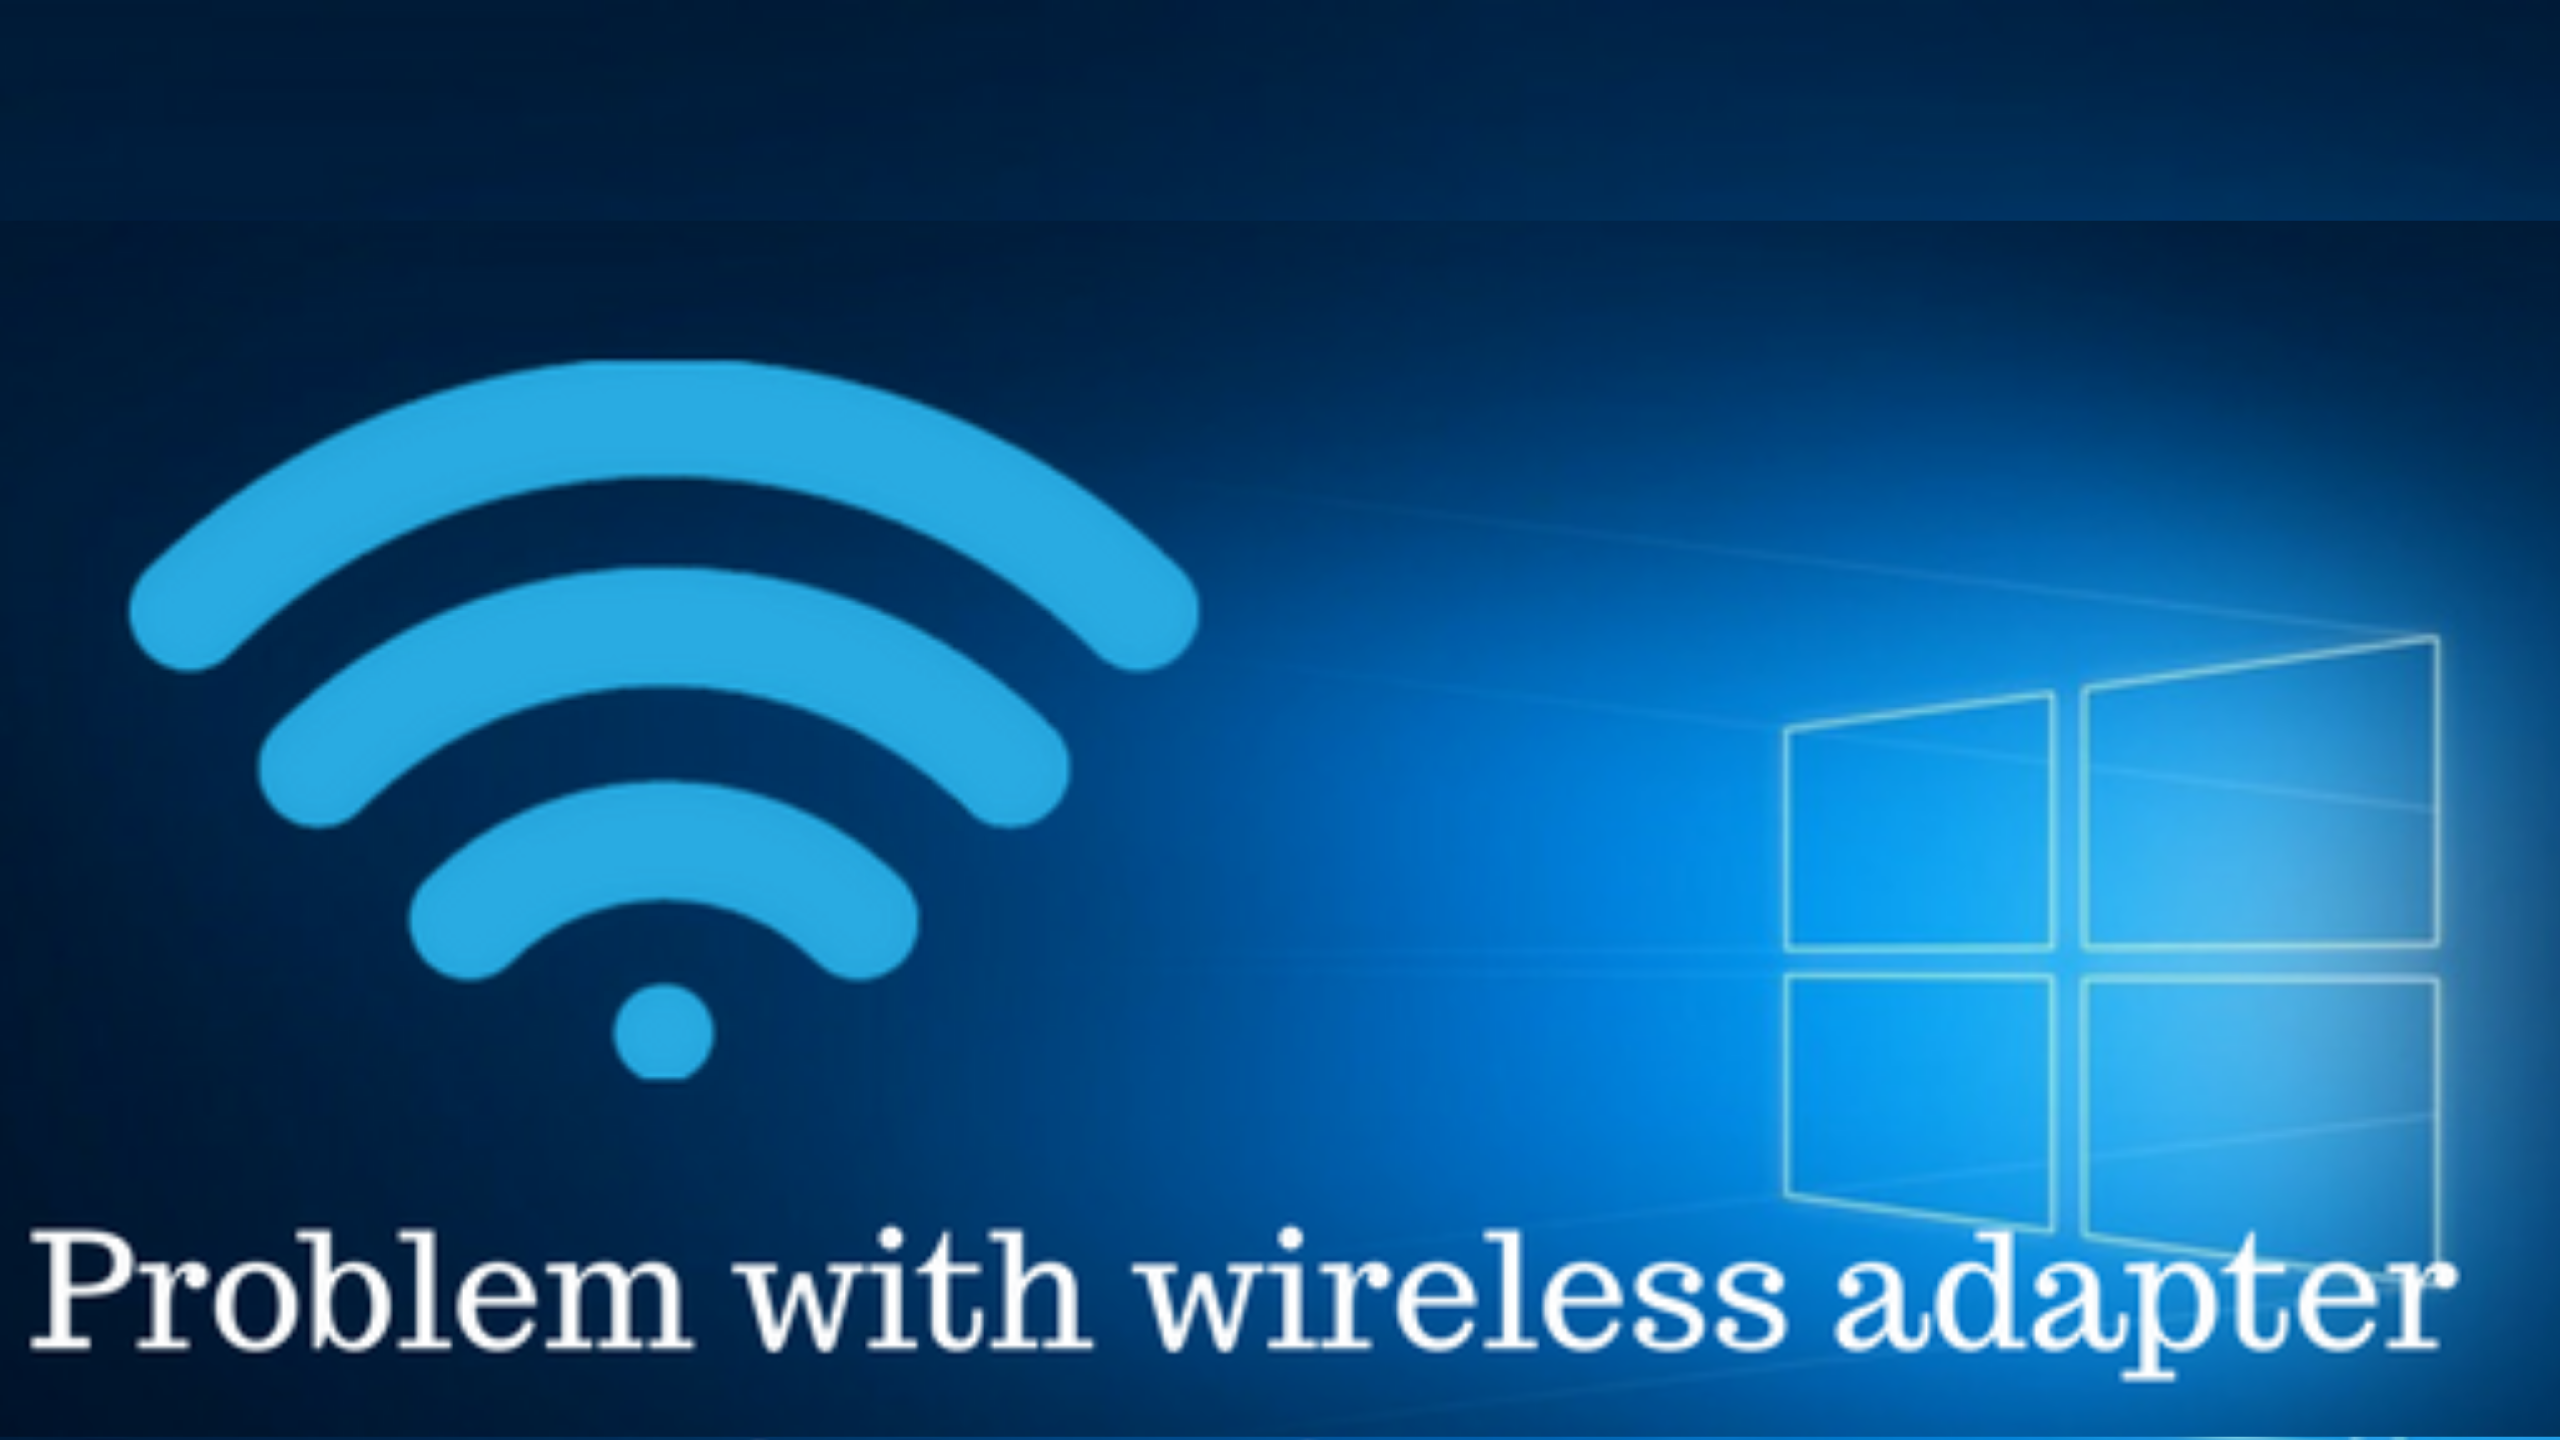 The Problem Of A Wireless Adapter Or Access Point – How To Fix This Issue With 5 Easy Solutions